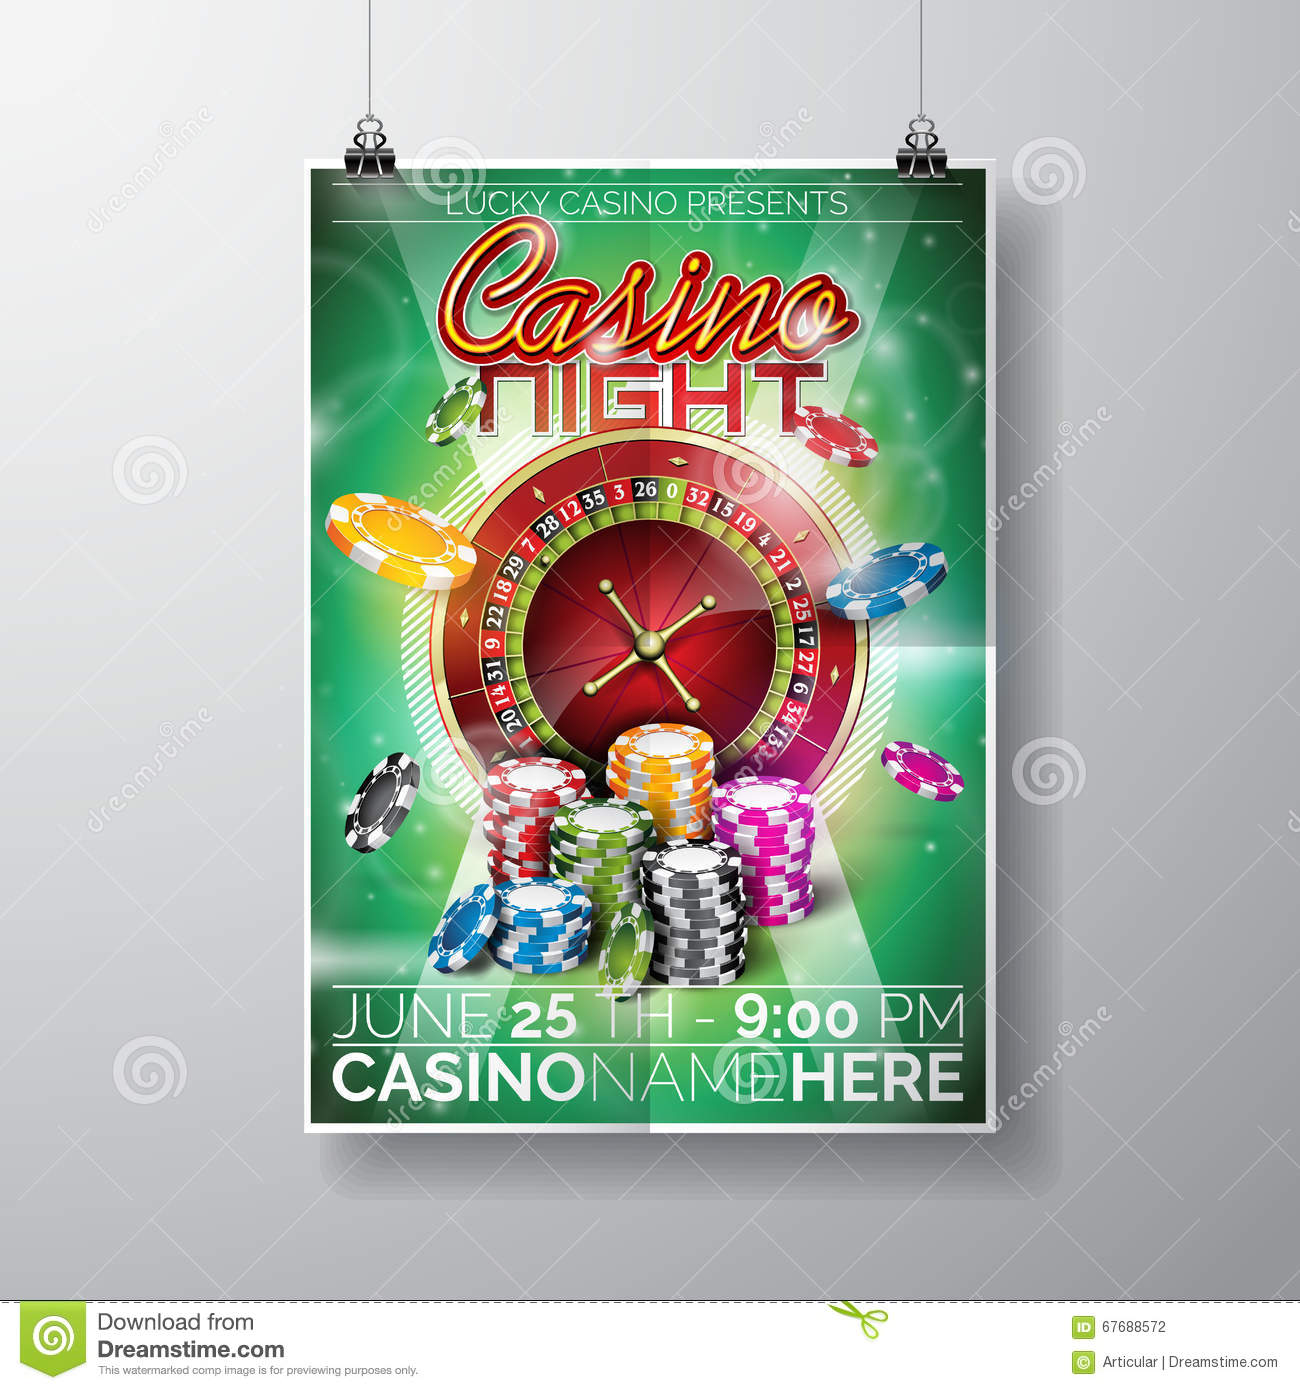 Vector Party Flyer design on a Casino theme with chips and roulette wheel on green background.